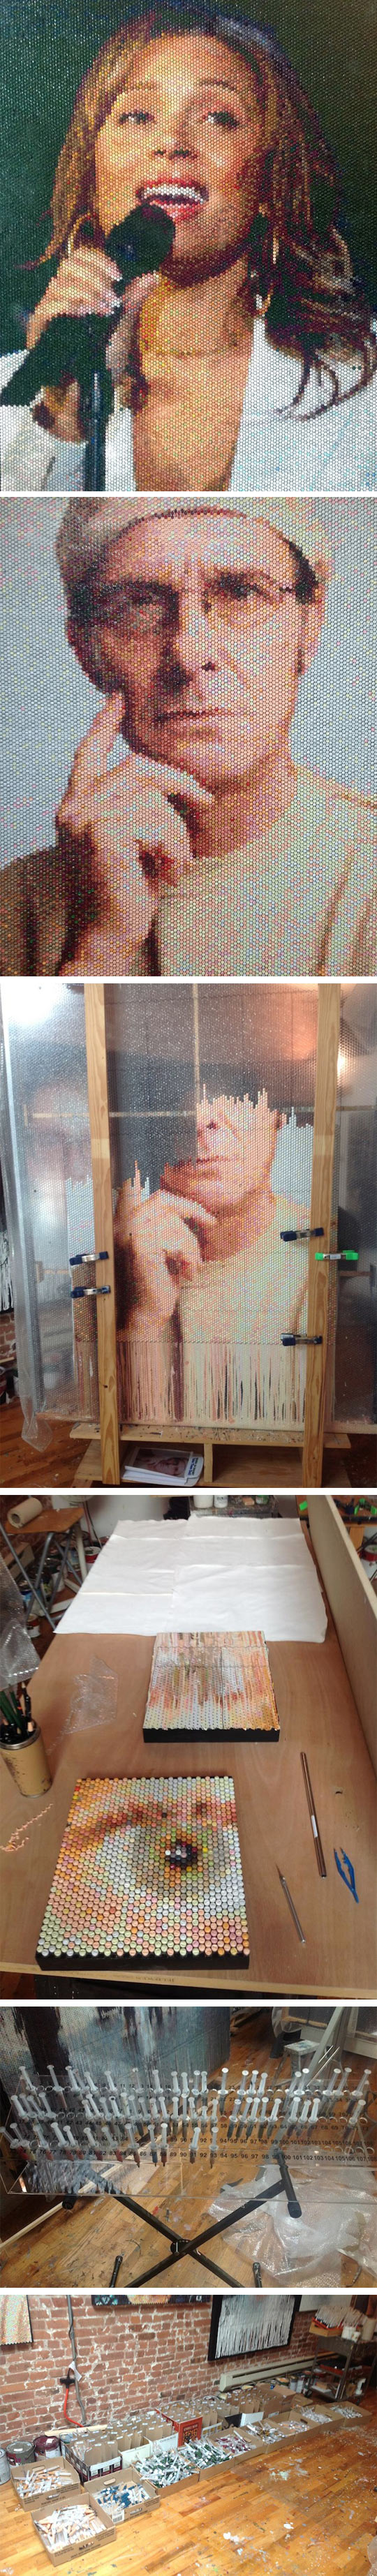 cool-Portraits-injecting-bubble-wrap-Jobs